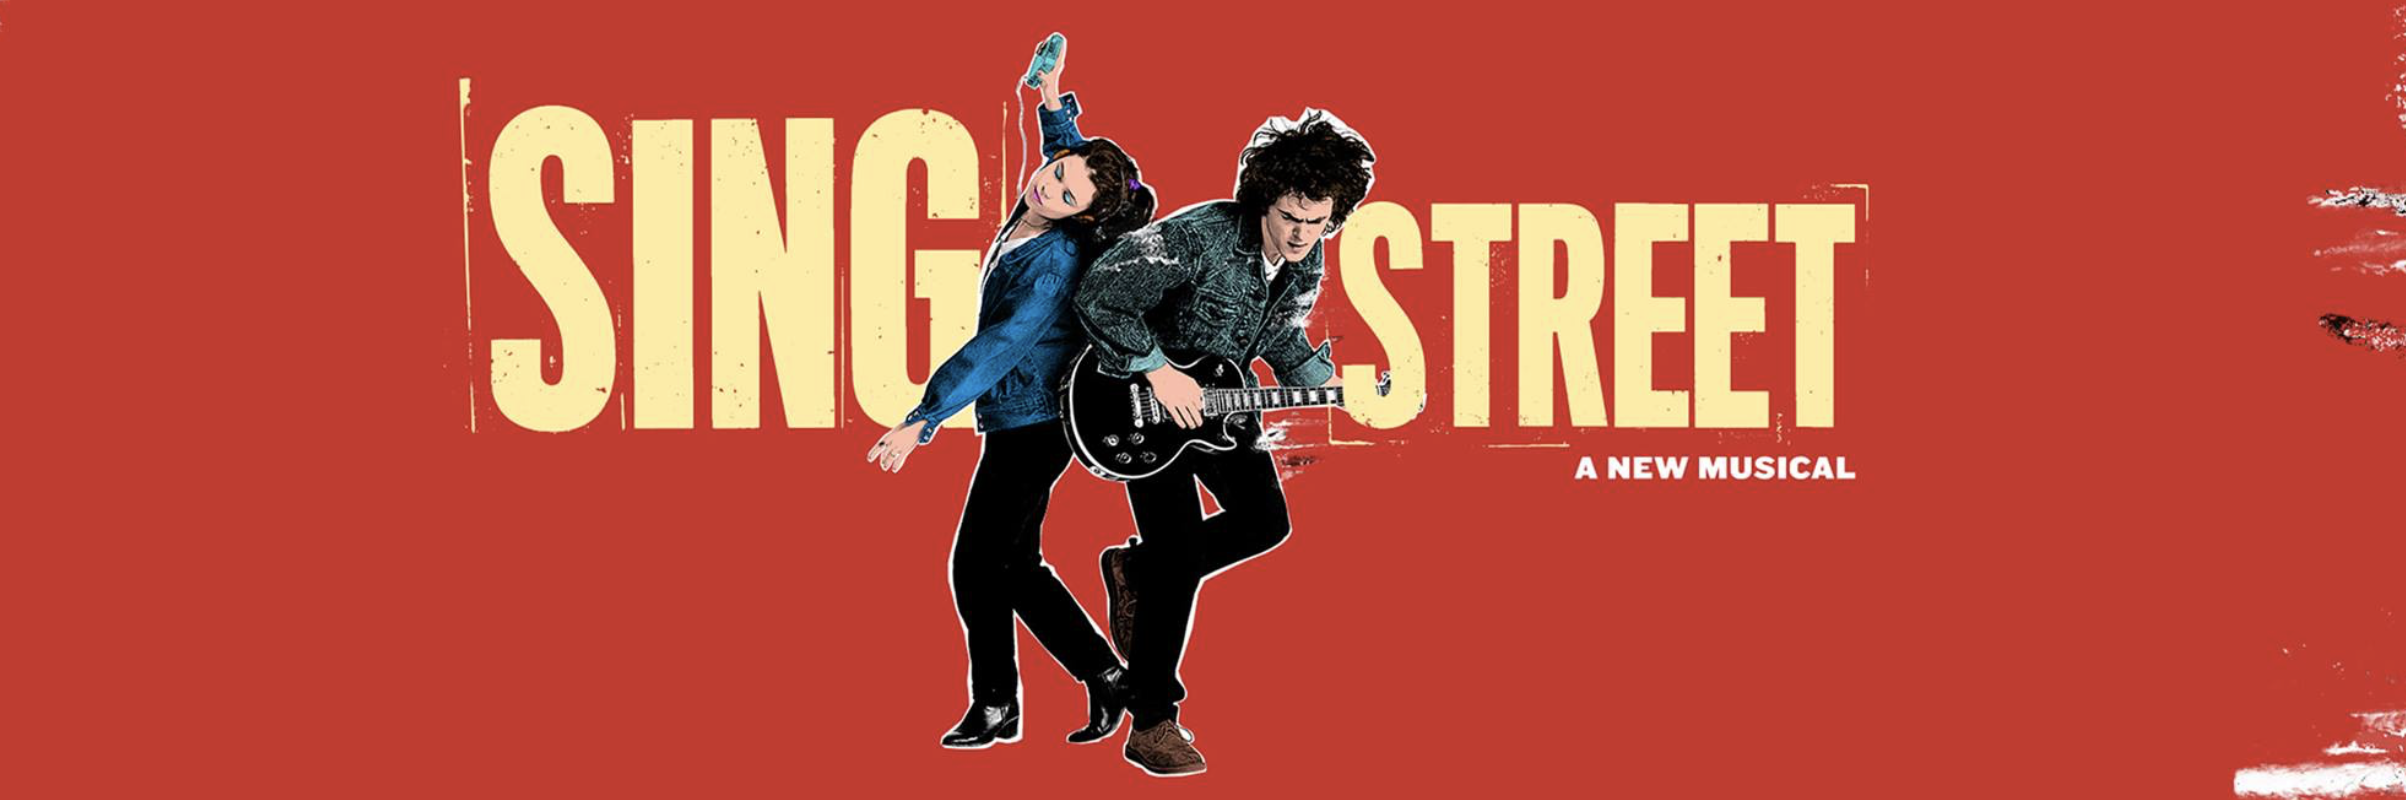 SING STREET: THE ORIGINAL BROADWAY CAST RECORDING IS OUT NOW!